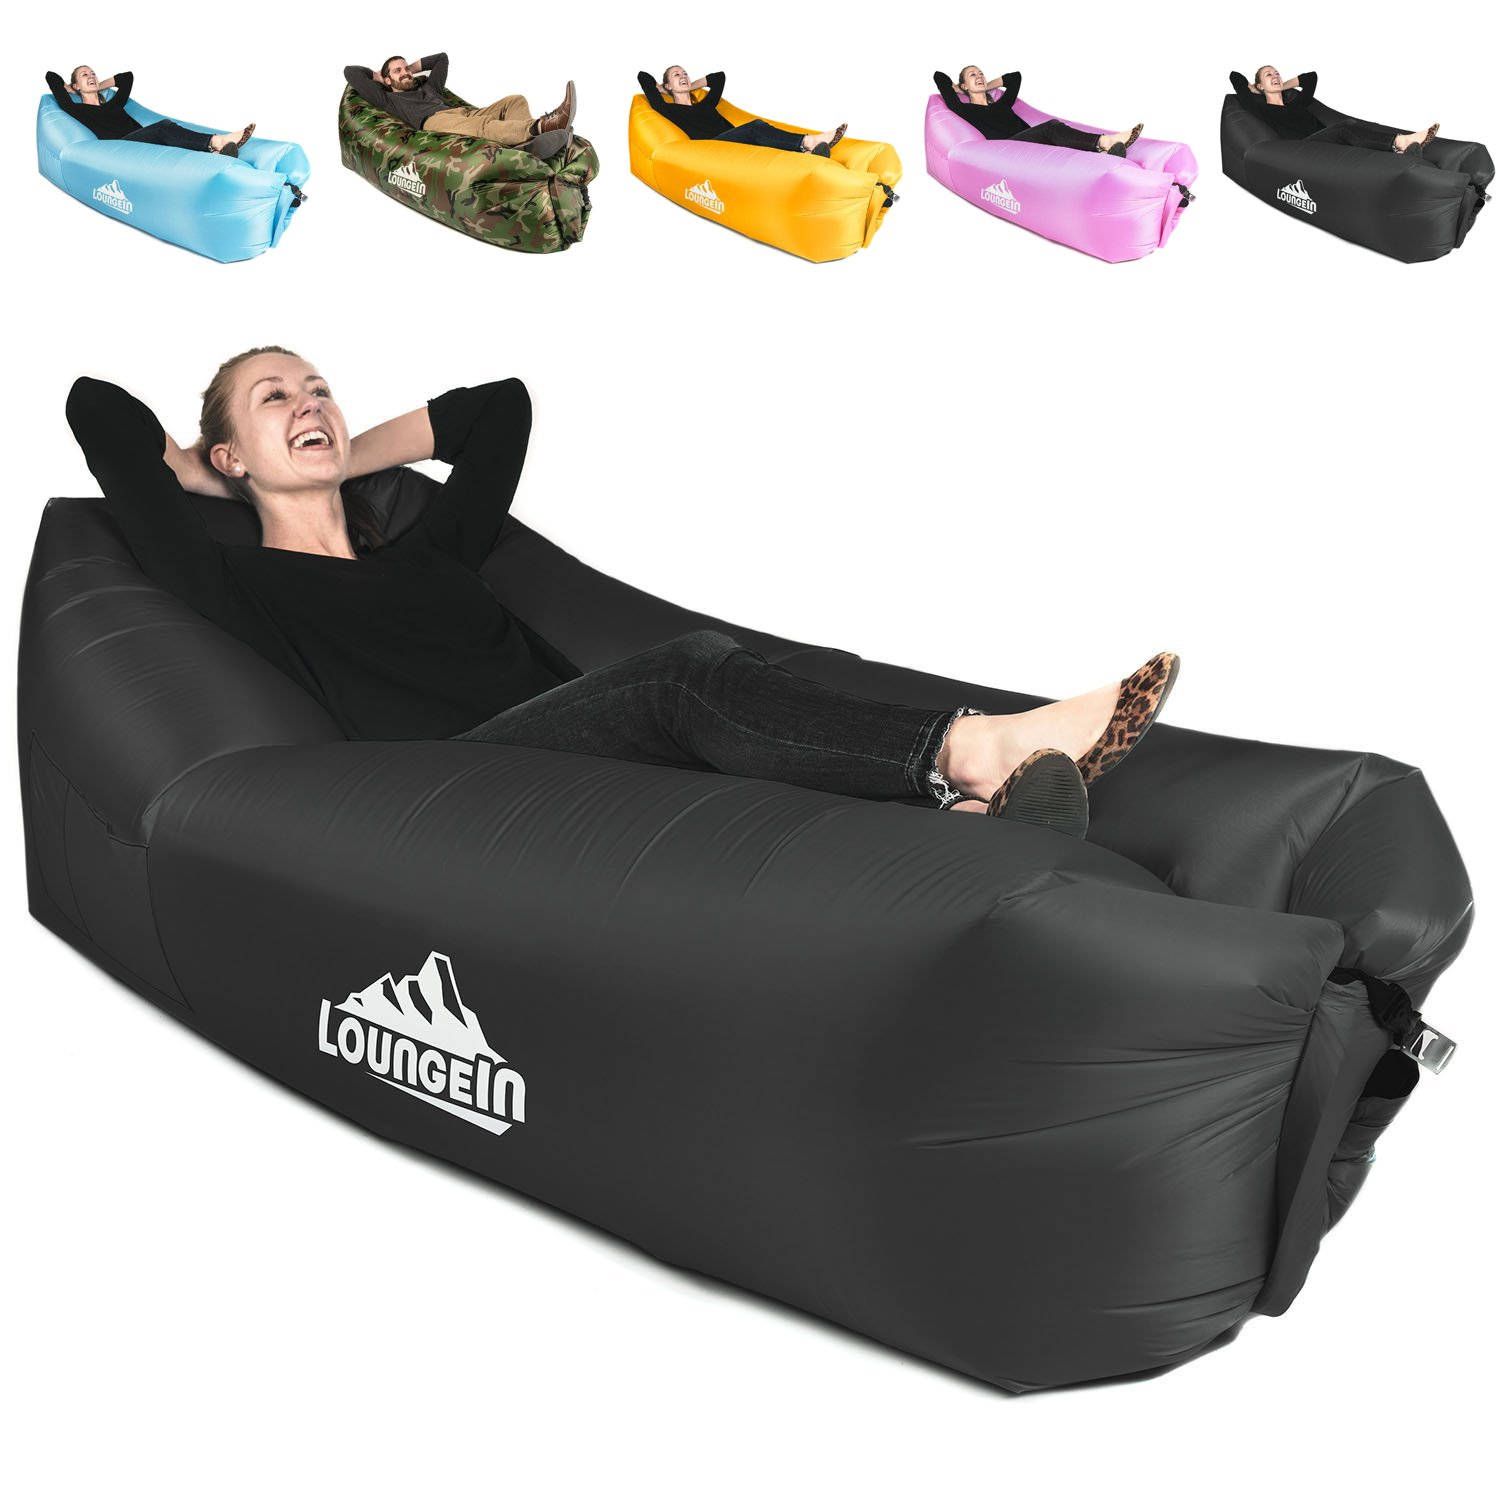 Top 10 Best Inflatable Lounger For Camping 2021 Reviews 8